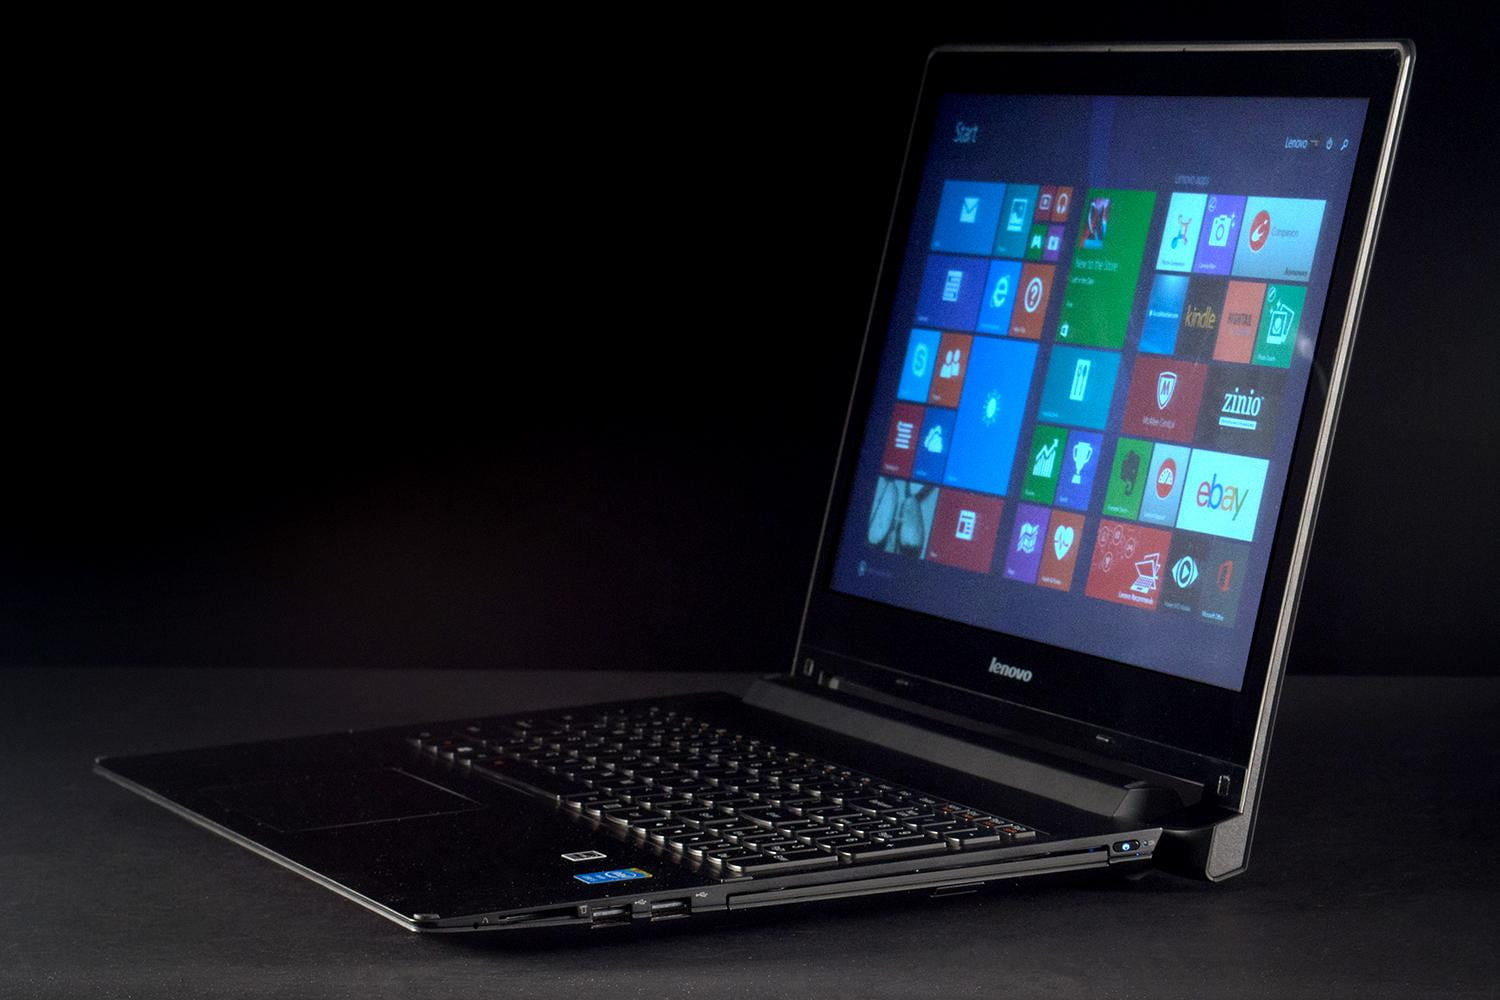 Which Lenovo Laptops Have the Best/Longest Battery Life